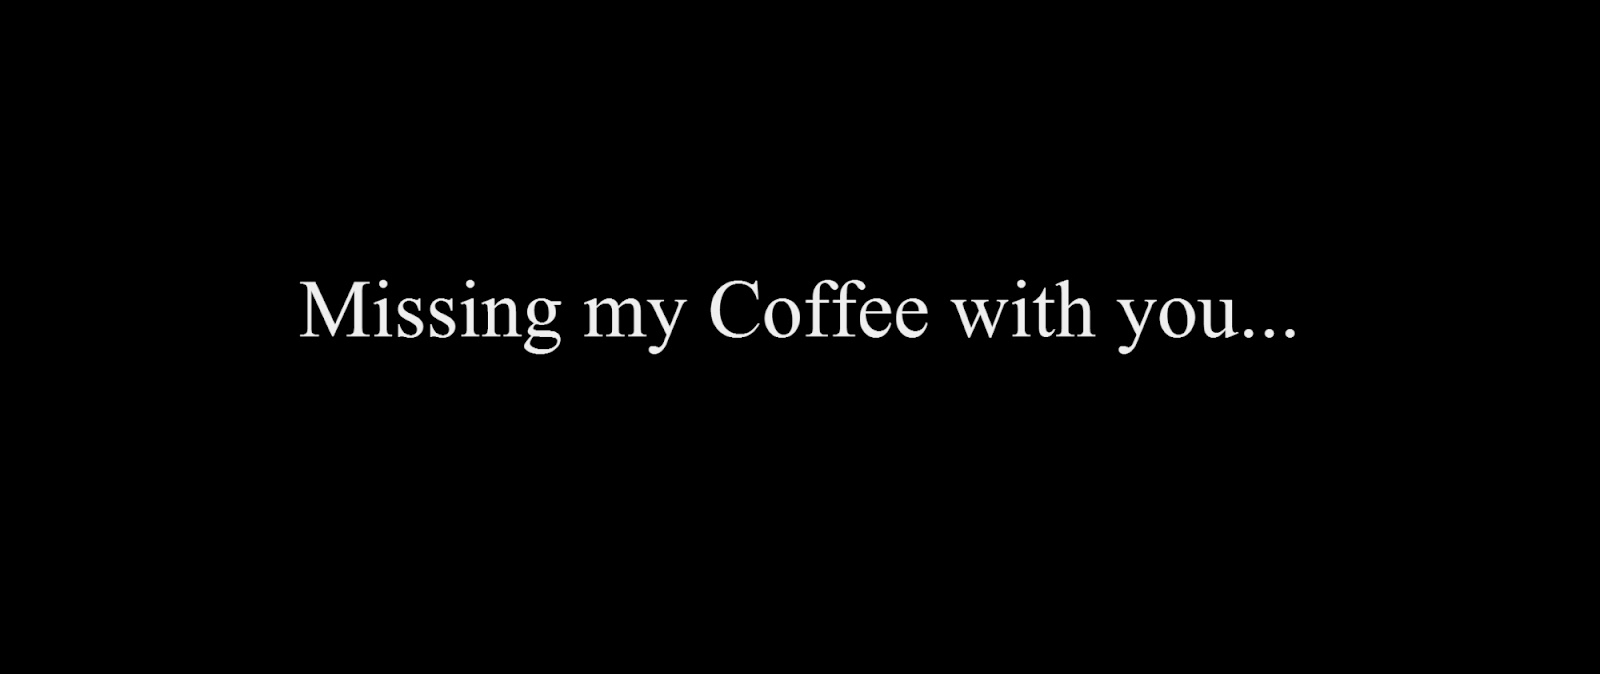 Missing my Coffee with you